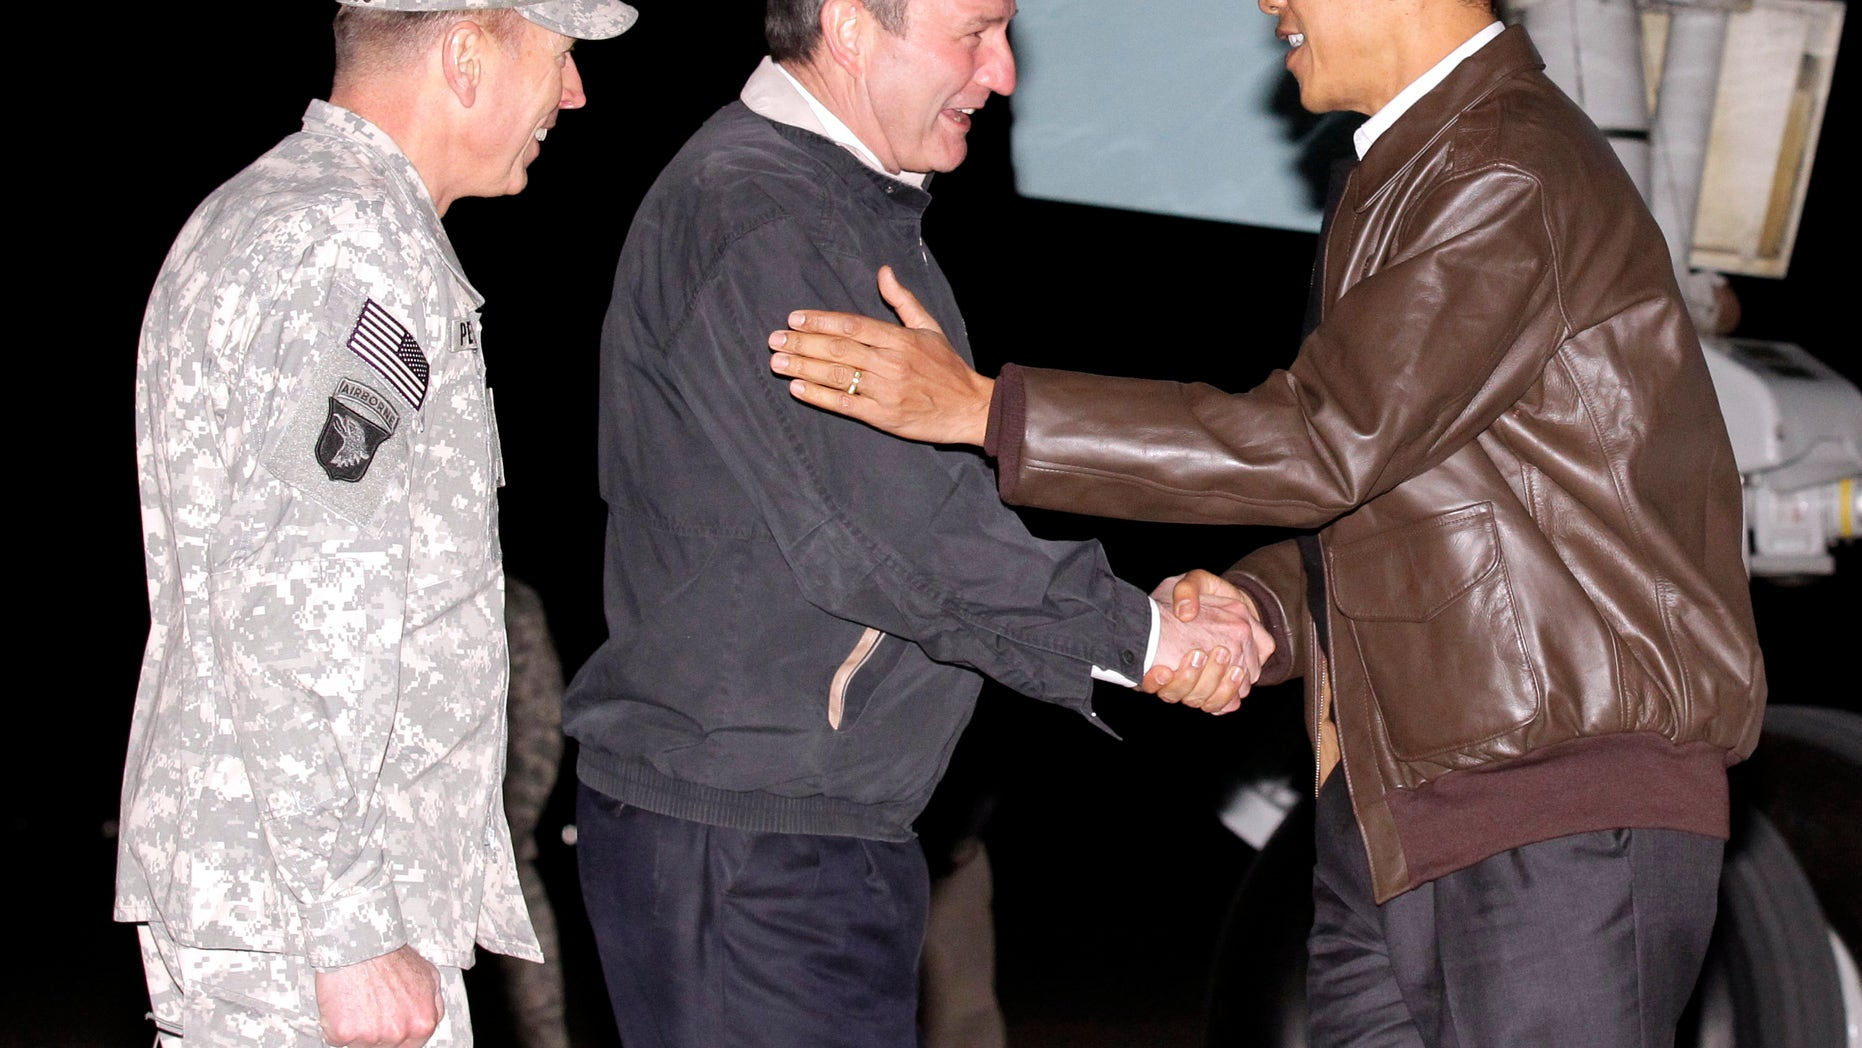 President Obama is greeted by NATO Commander in Afghanistan Gen. David Petraeus, left, and US Ambassador to Afghanistan Karl W. Elkenberry, center, after stepping off Air Force One during an unannounced visit to Bagram Air Base in Afghanistan. Friday, Dec. 3, 2010. (AP)